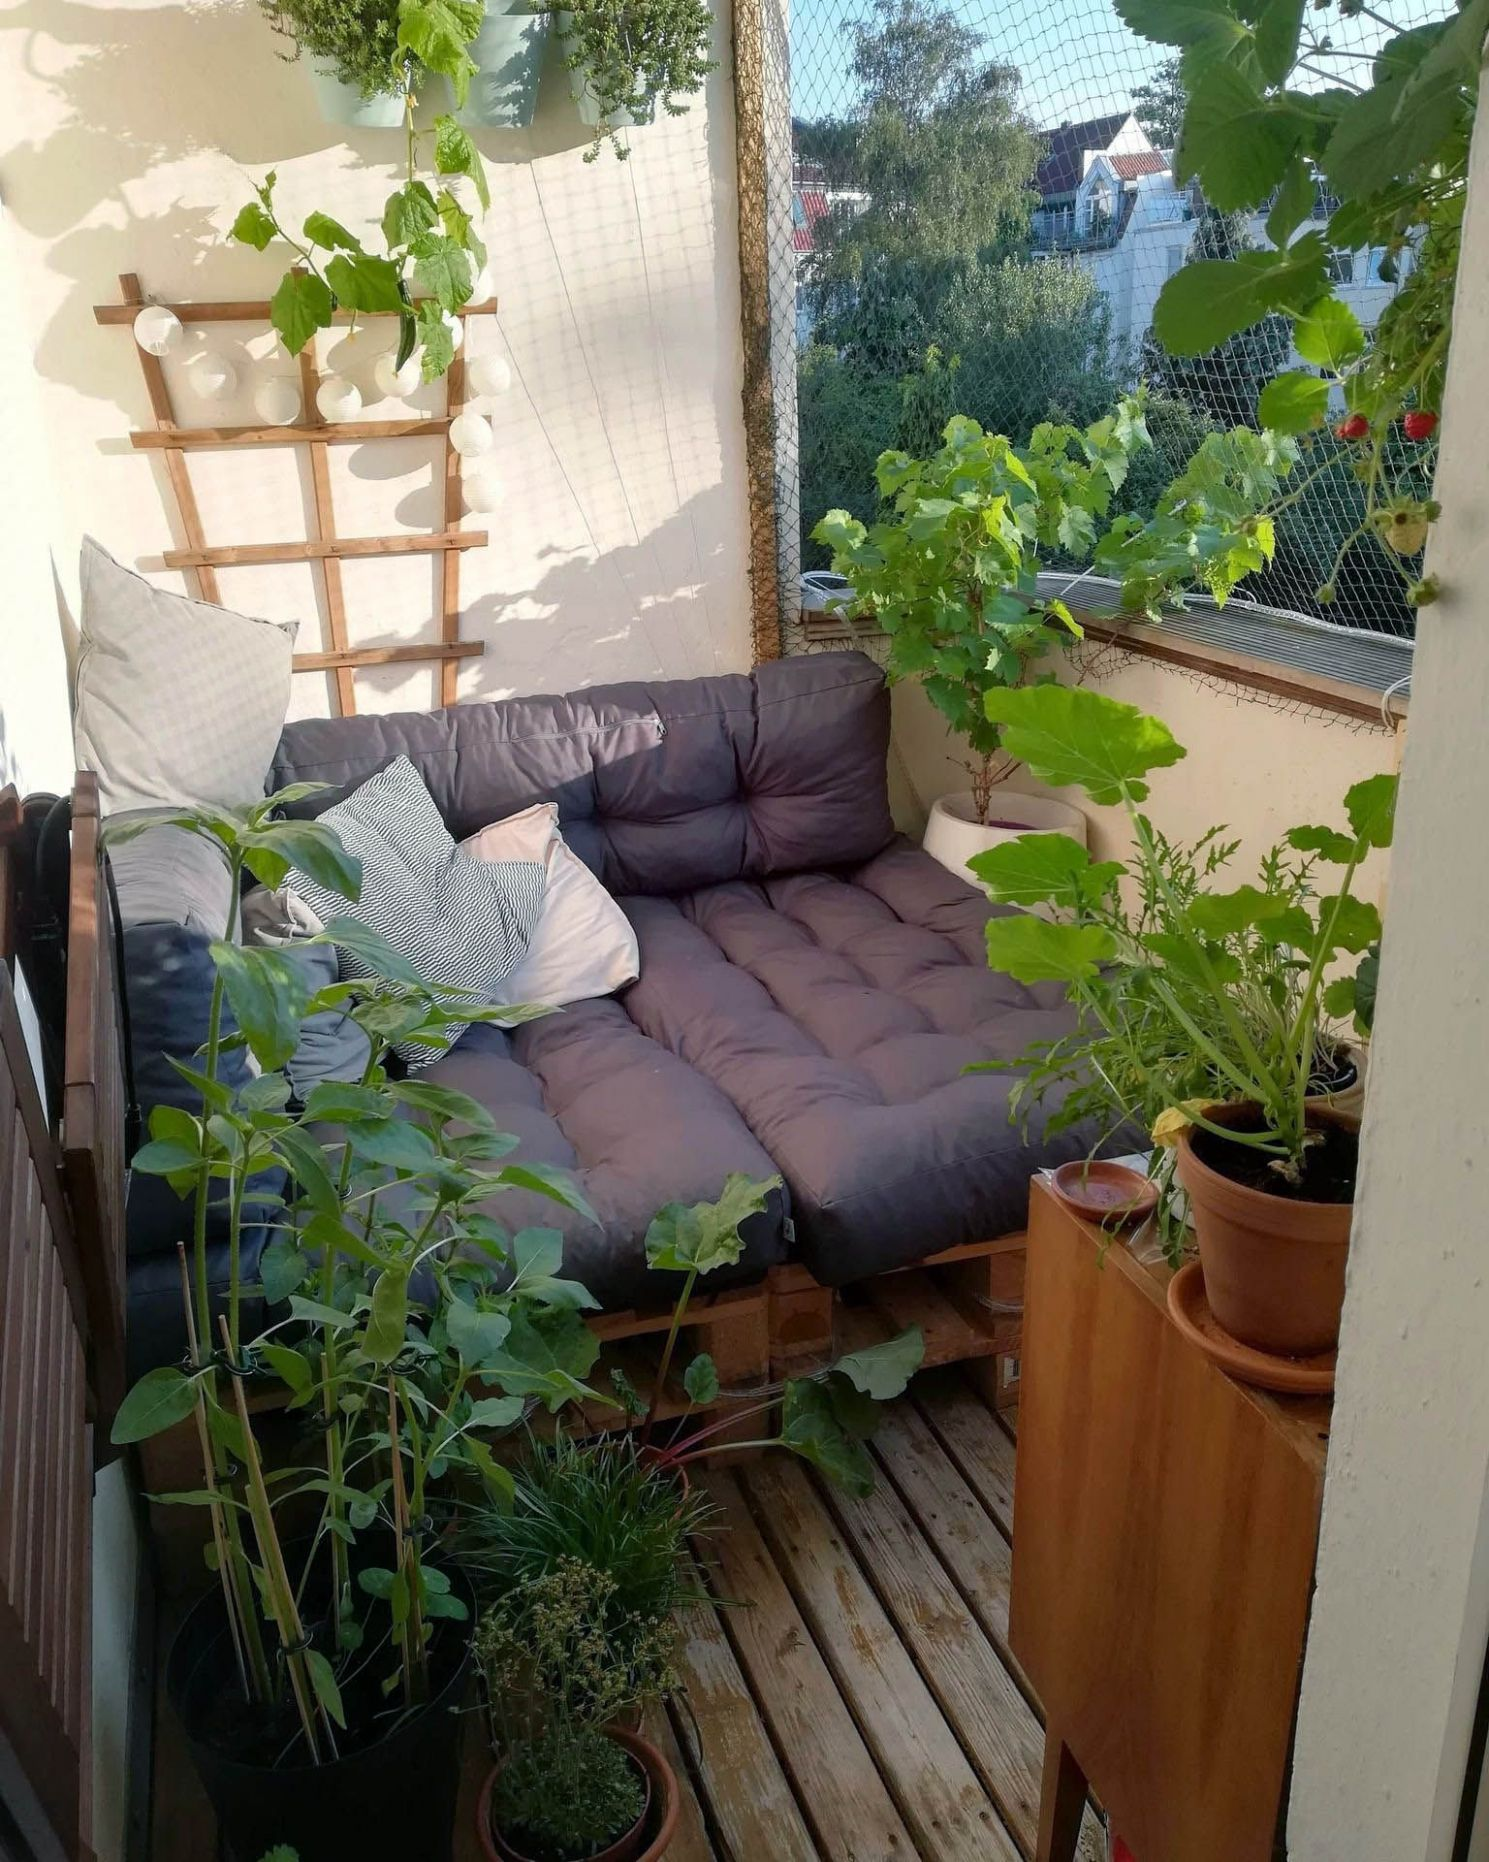 Cool balcony cover ideas exclusive on homesable home decor ..